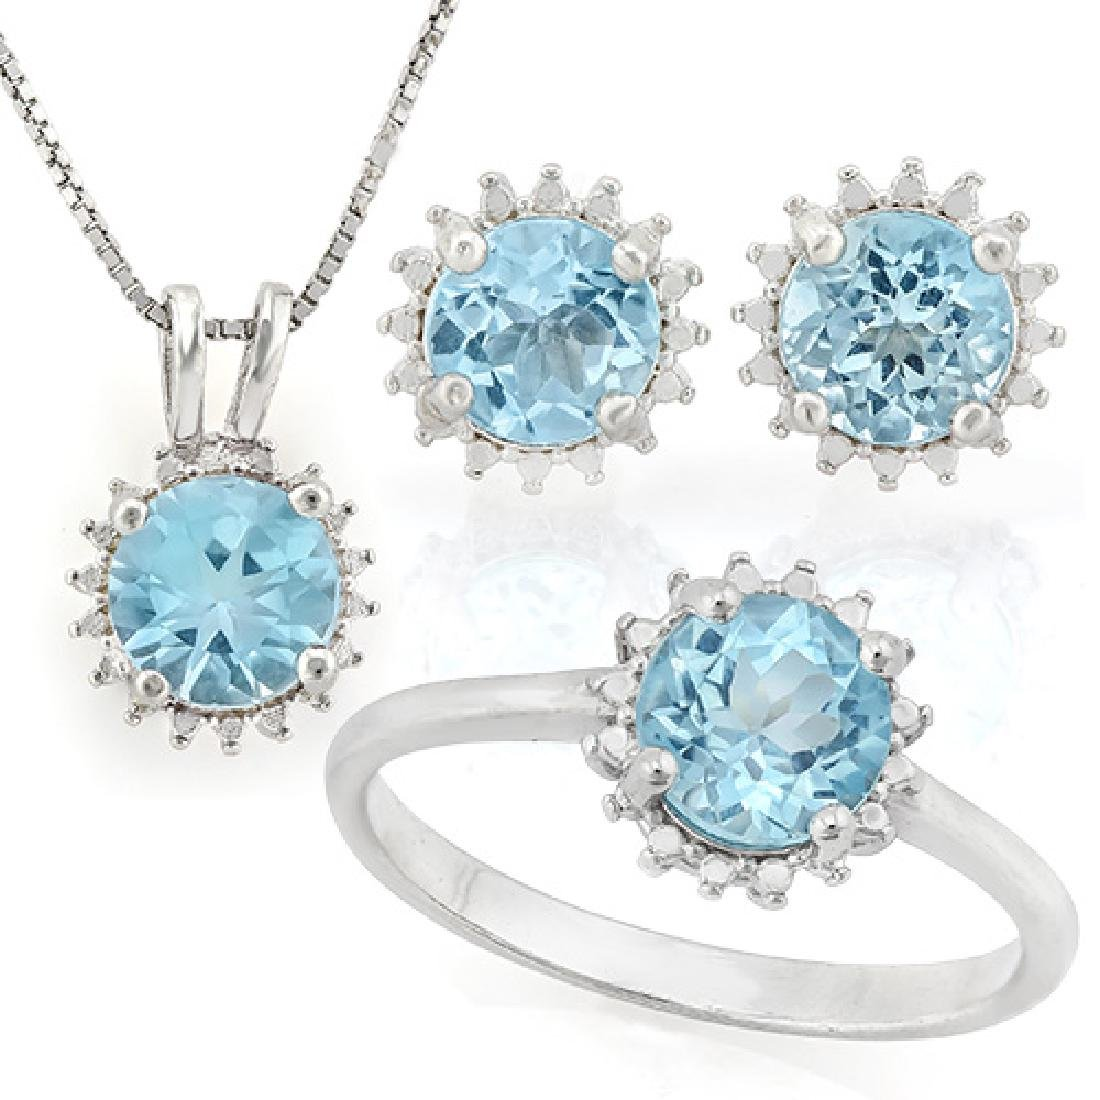 4 3/4 CARAT BABY SWISS BLUE TOPAZS 925 STERLING SILVER